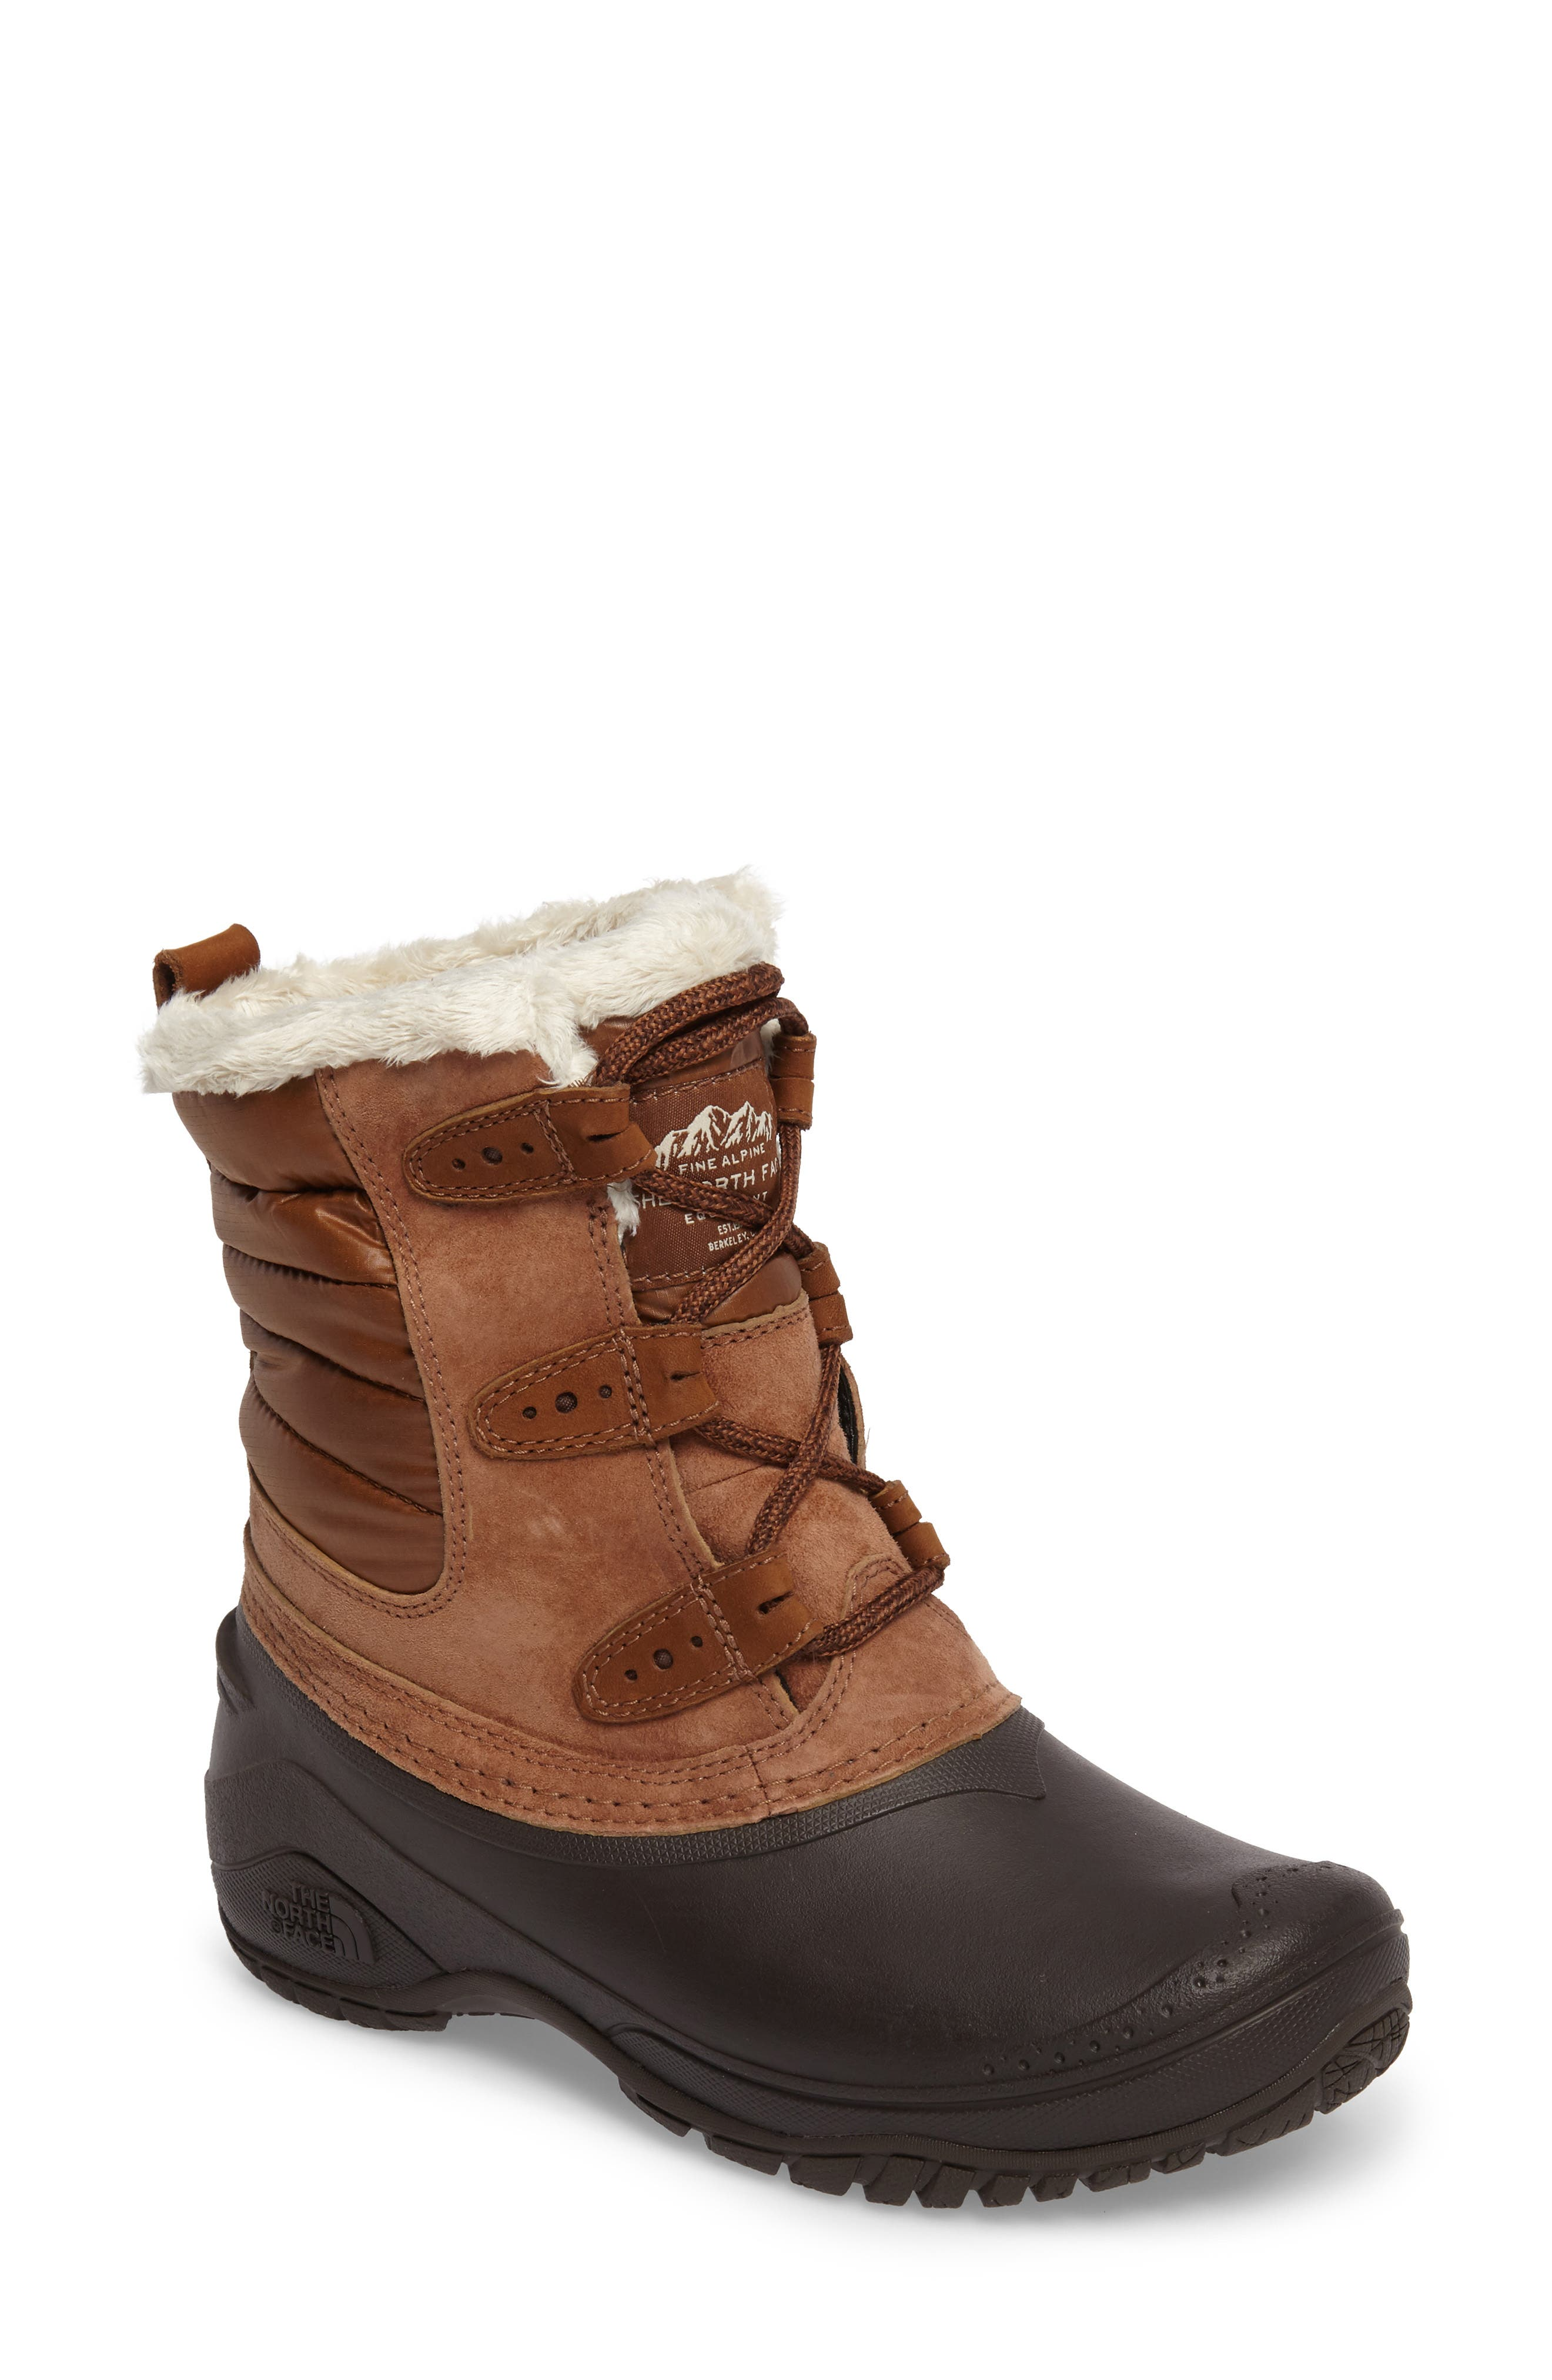 Shellista II Waterproof Boot,                         Main,                         color, Dachshund Brown/ Vintage White